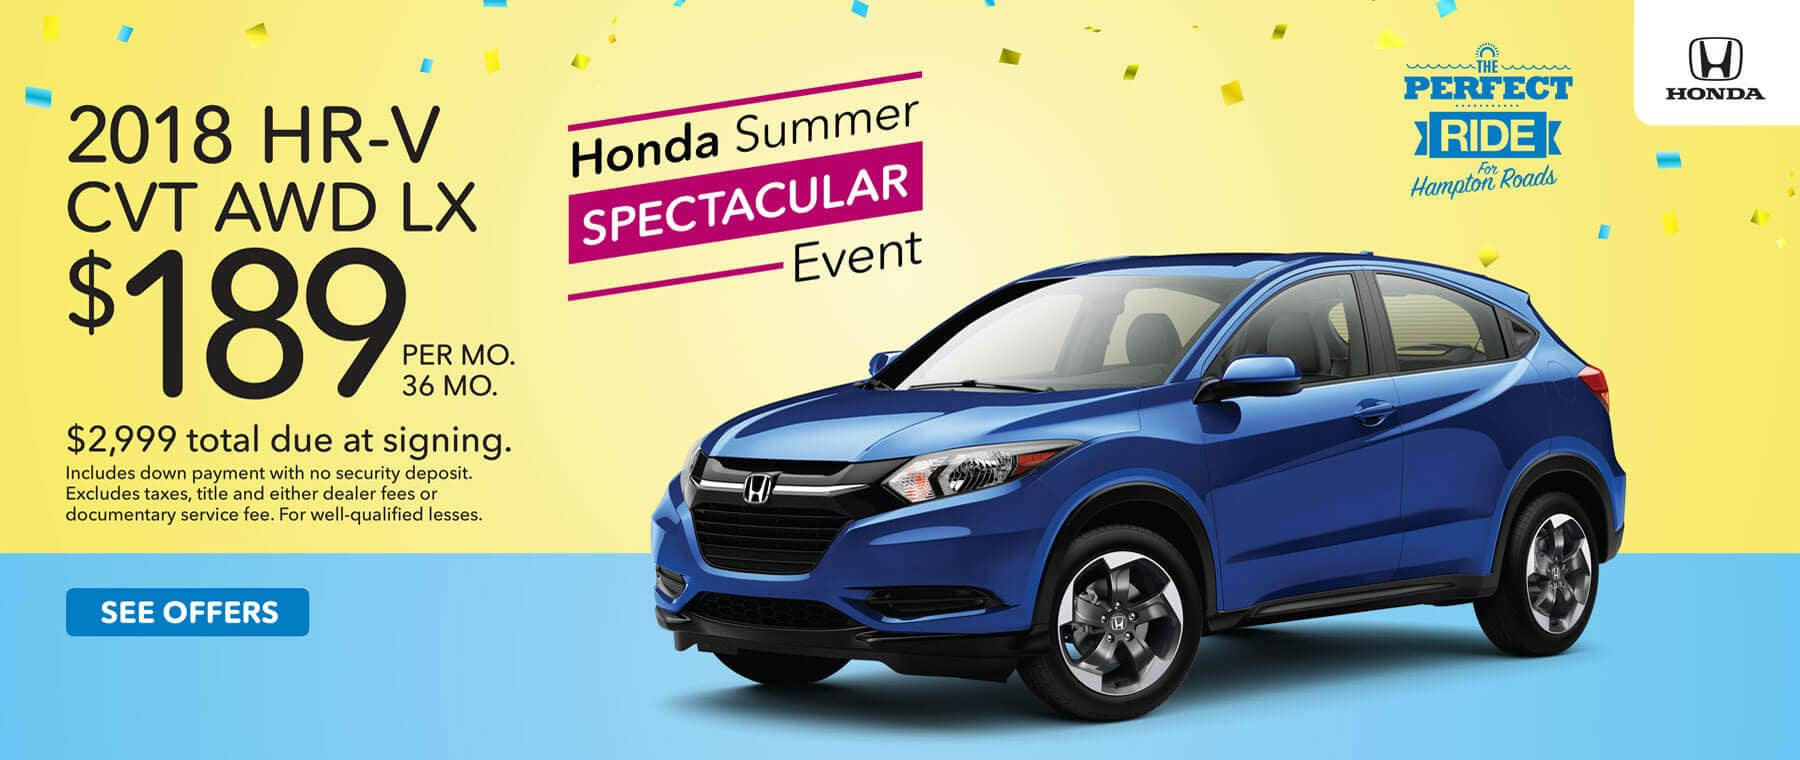 Honda Summer Spectacular Event 2018 HR-V Lease Offer